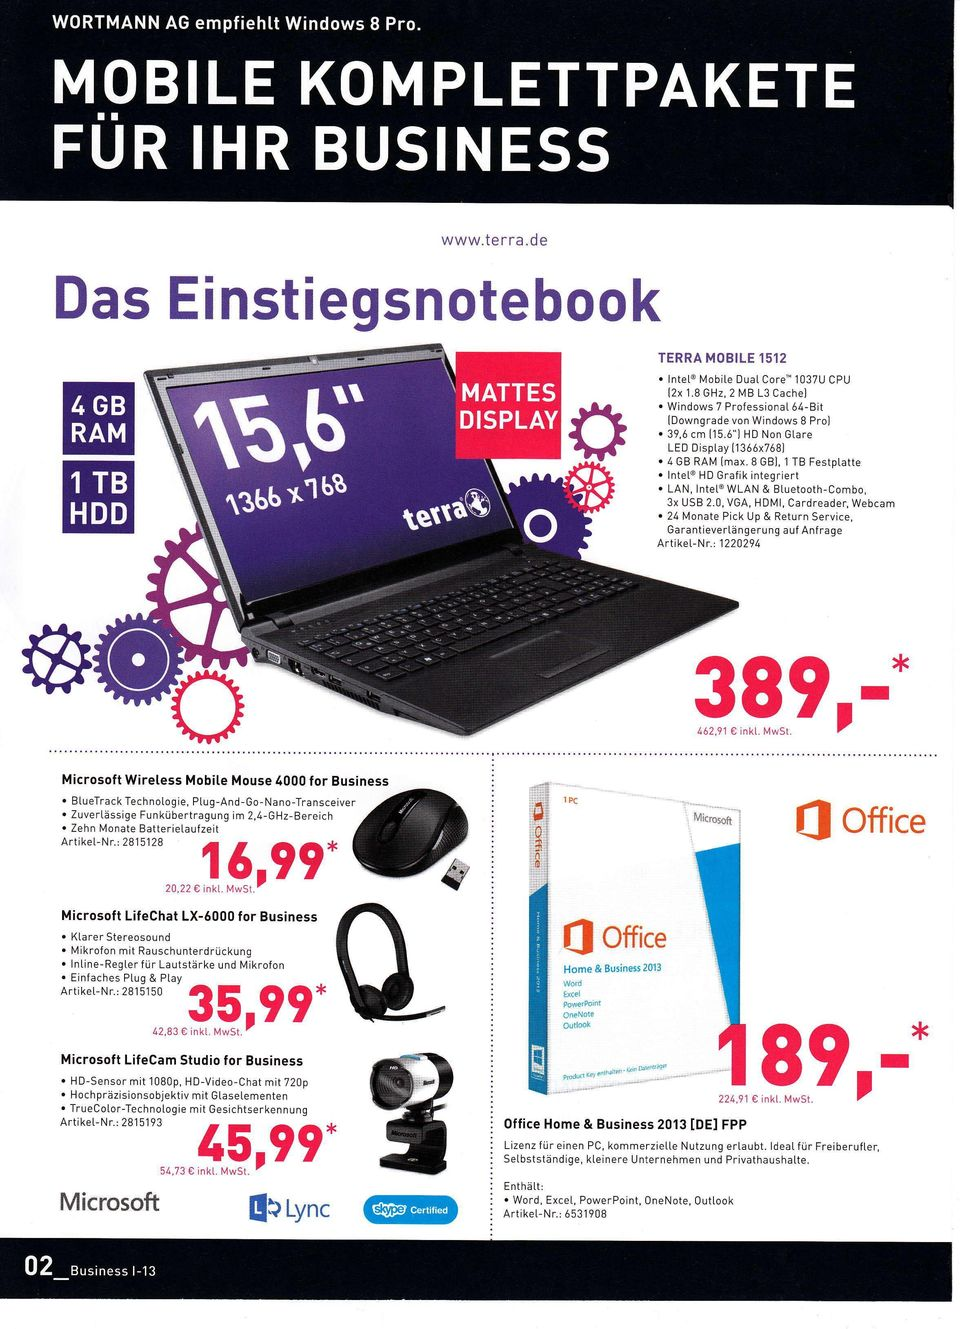 Return Service, Garantievertängerung auf Anf rage Artiket-Nr:1220294 Microsoft Wiretess Mobile Mouse 4000 for Business BtueTrack Technotogie, Ptug-And-Go-Nano-Transceiver Zuvertässige Funkübertragung